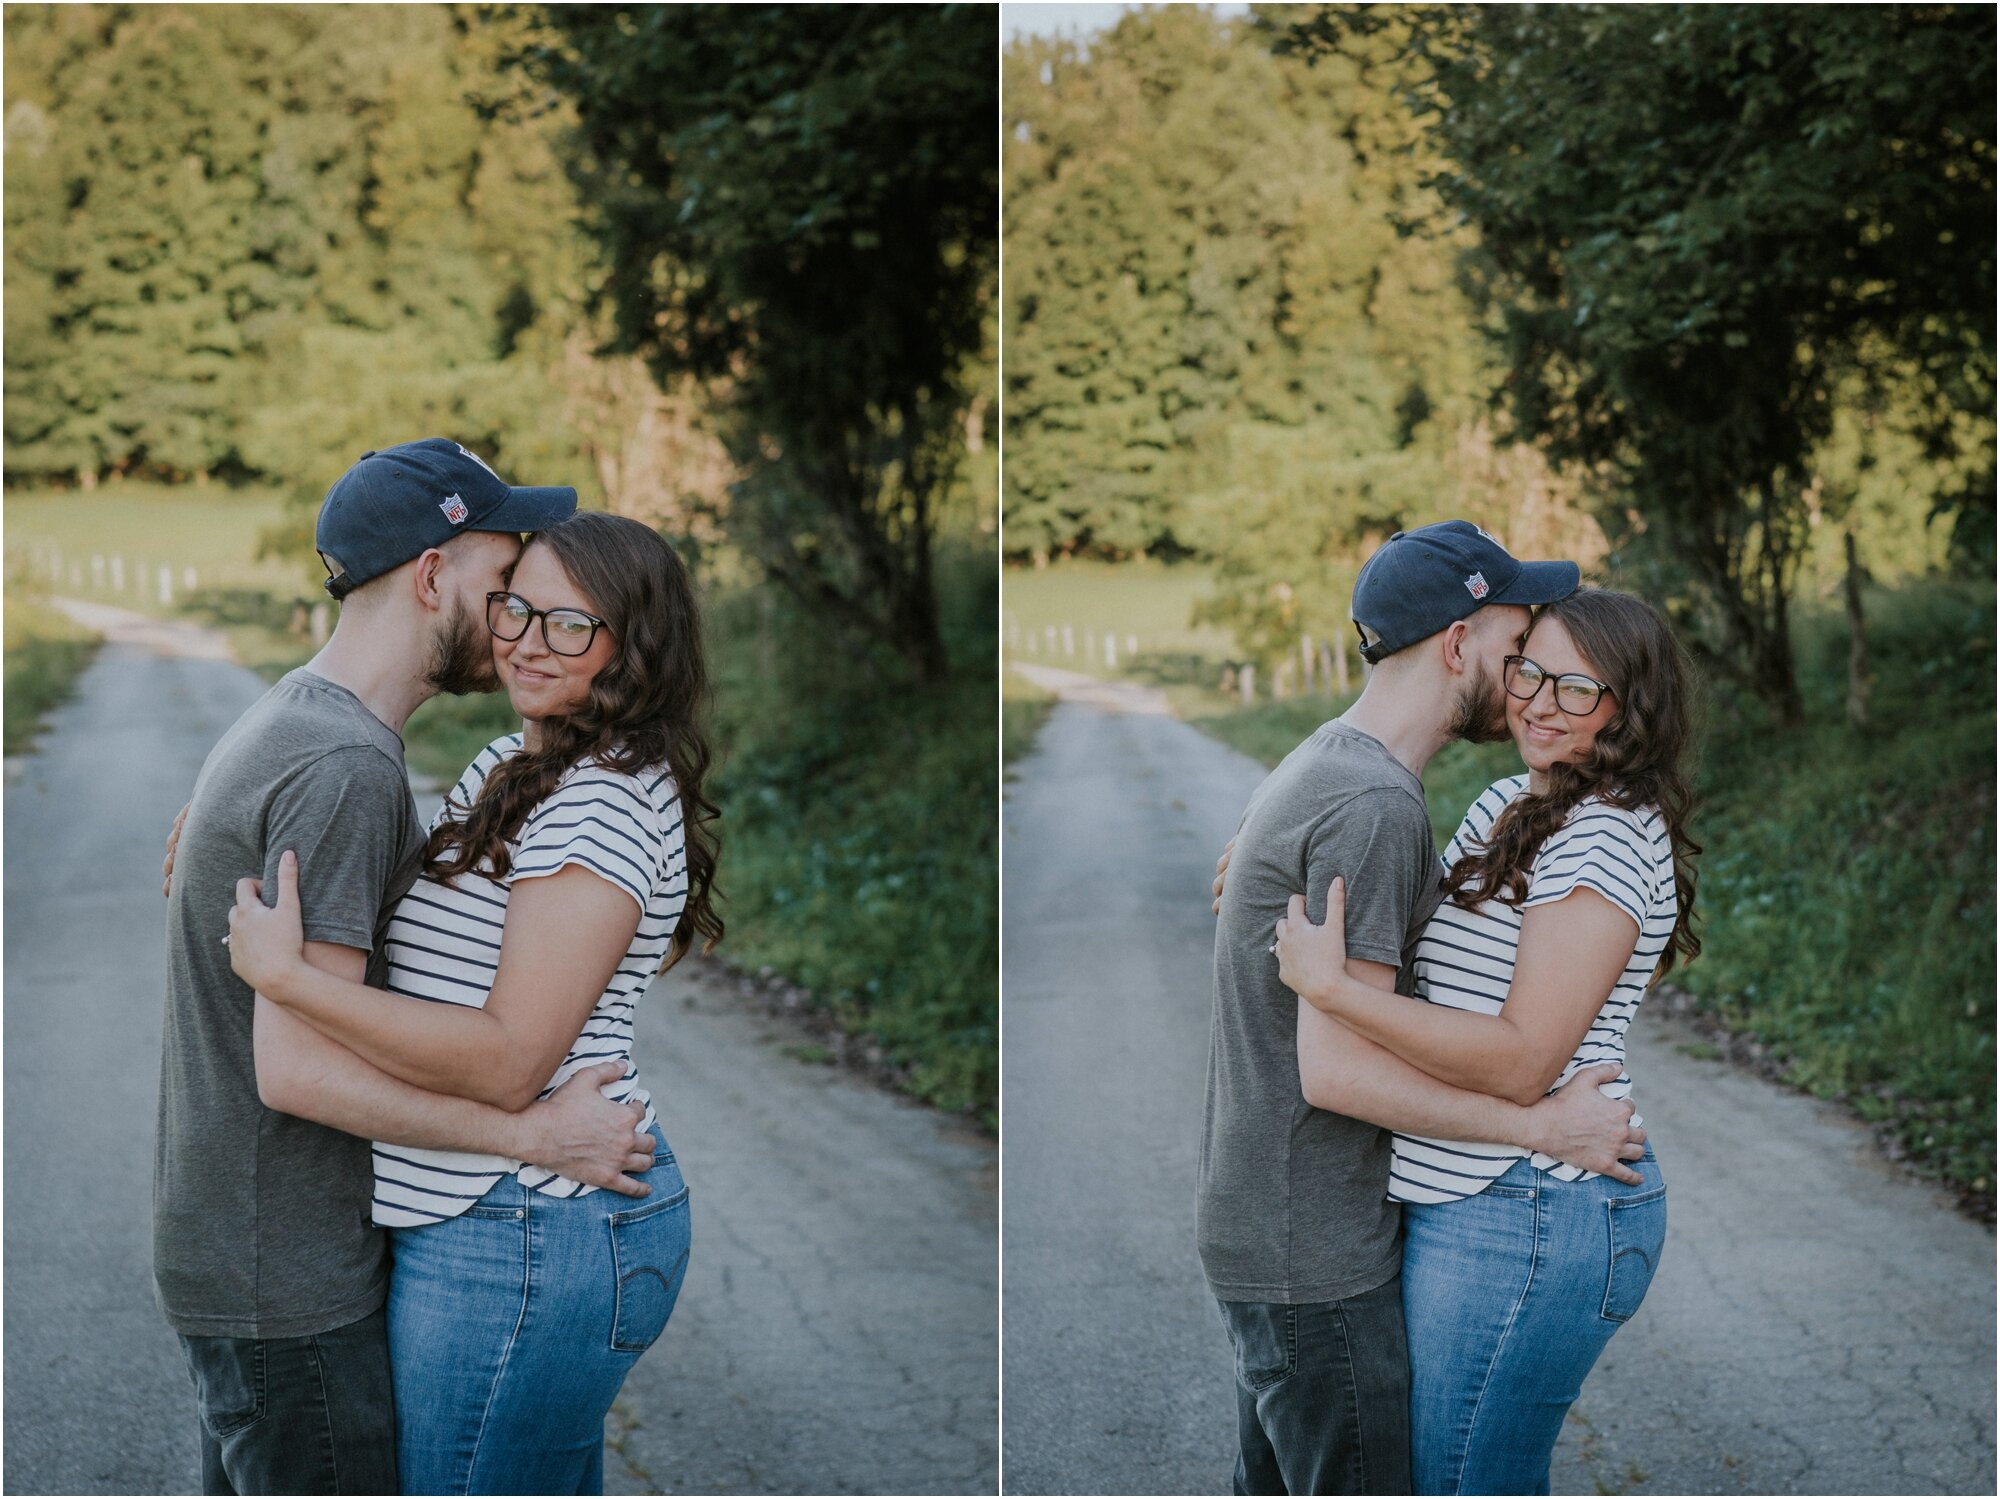 kingsport-tennessee-backyard-pond-bays-mountain-summer-engagement-session_0005.jpg